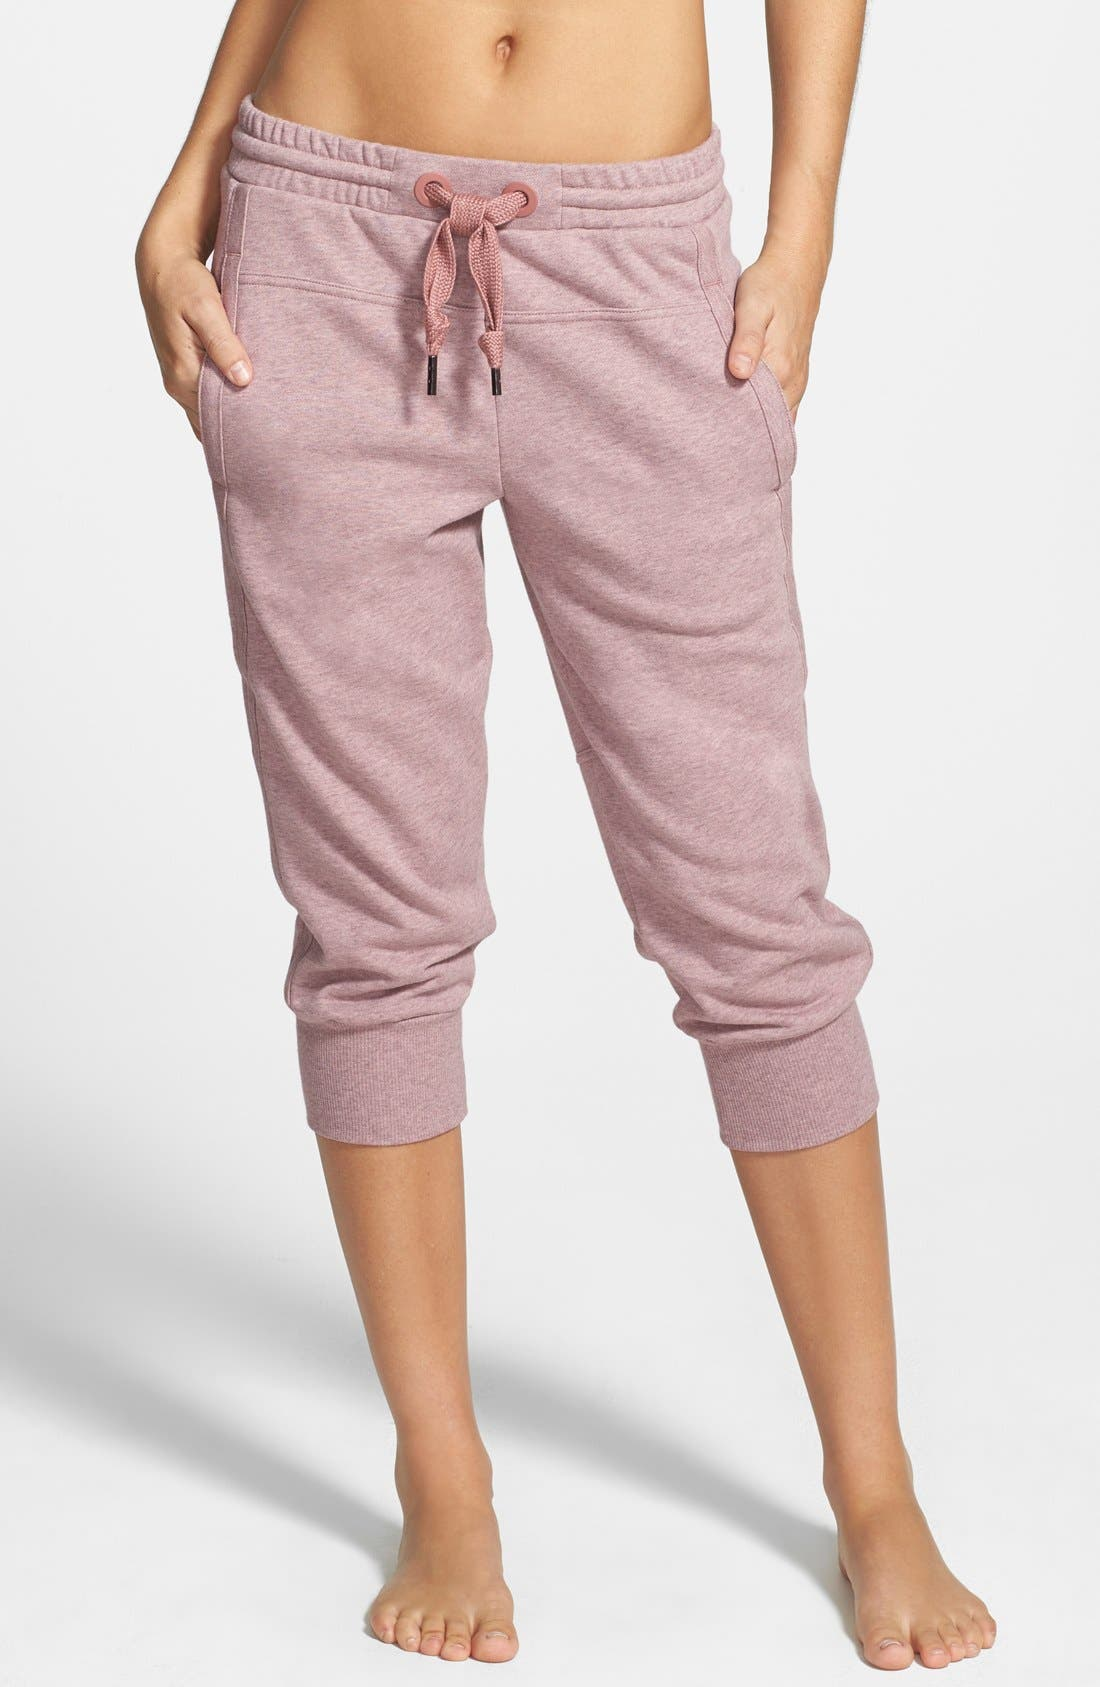 Alternate Image 1 Selected - adidas by Stella McCartney 'Essentials' Capris Sweatpants